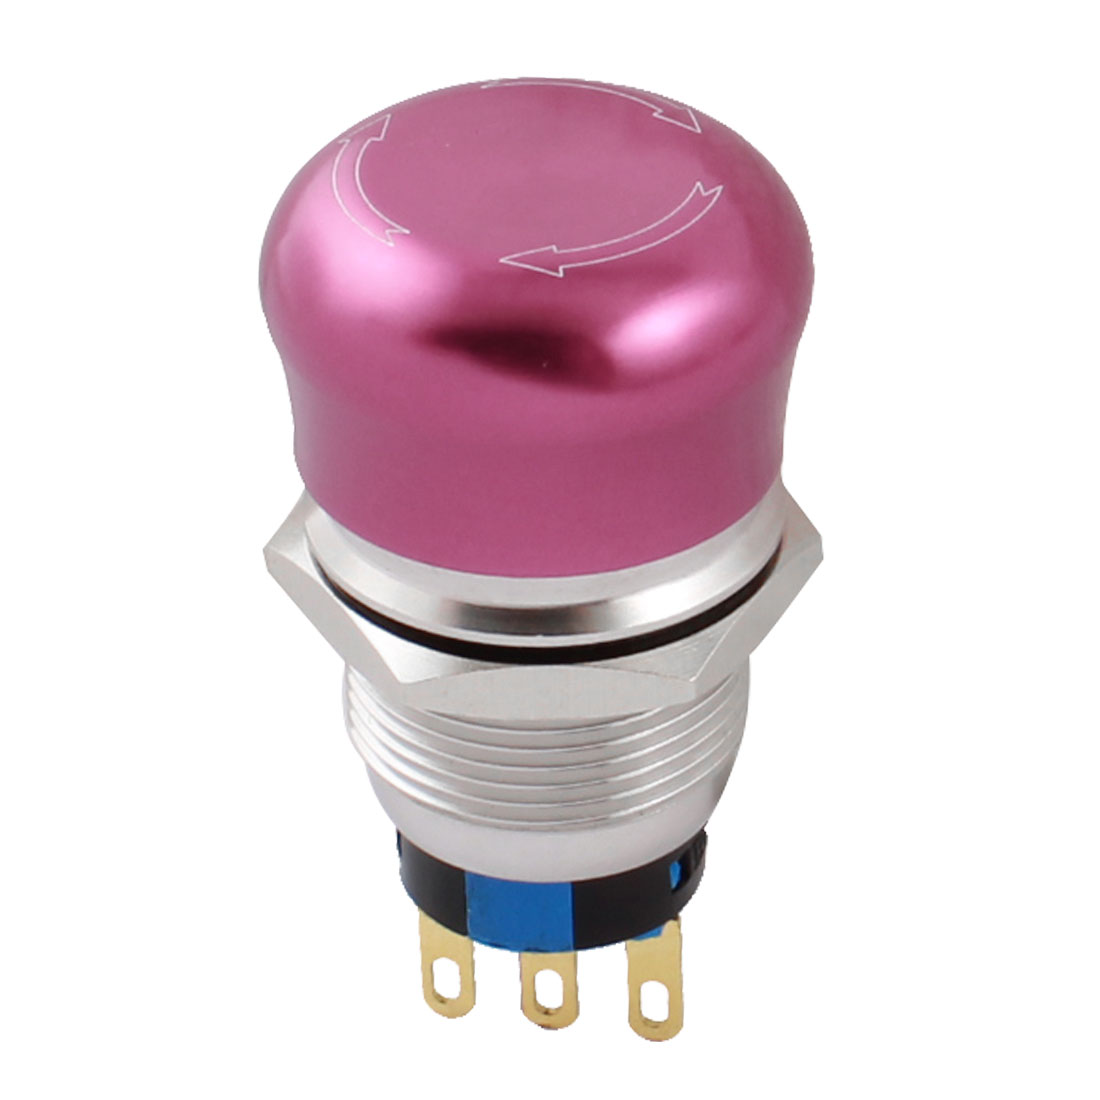 AC250V 5A 19mm SPDT 3Pin 1NO 1NC Locking Rotary Reset Stainless Steel Red Head Emergency Stop Push Button Switch